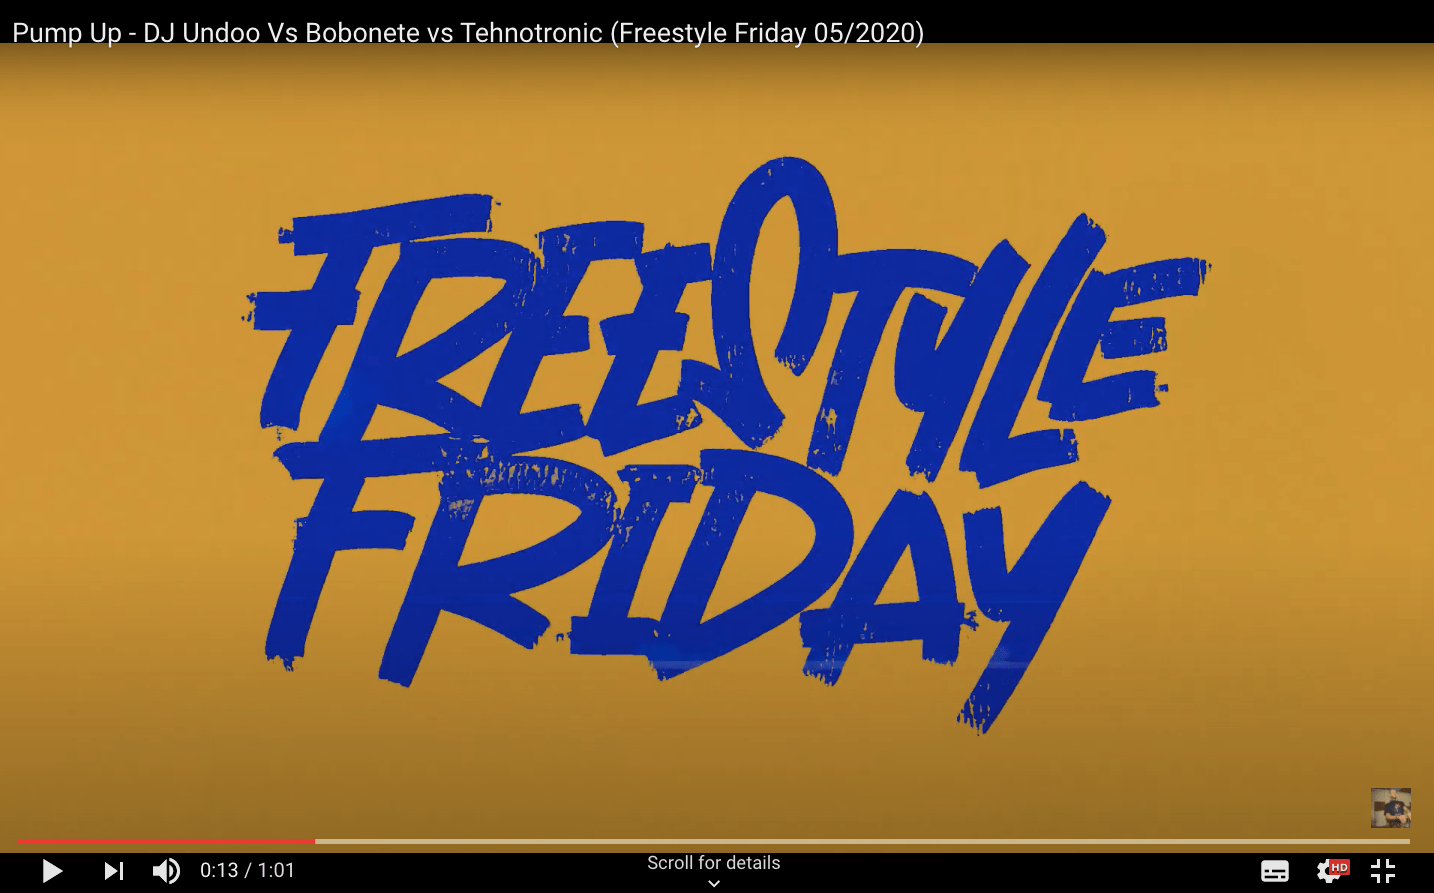 Pump Up - DJ Undoo Vs Bobonete vs Tehnotronic (Freestyle Friday 05/2020)